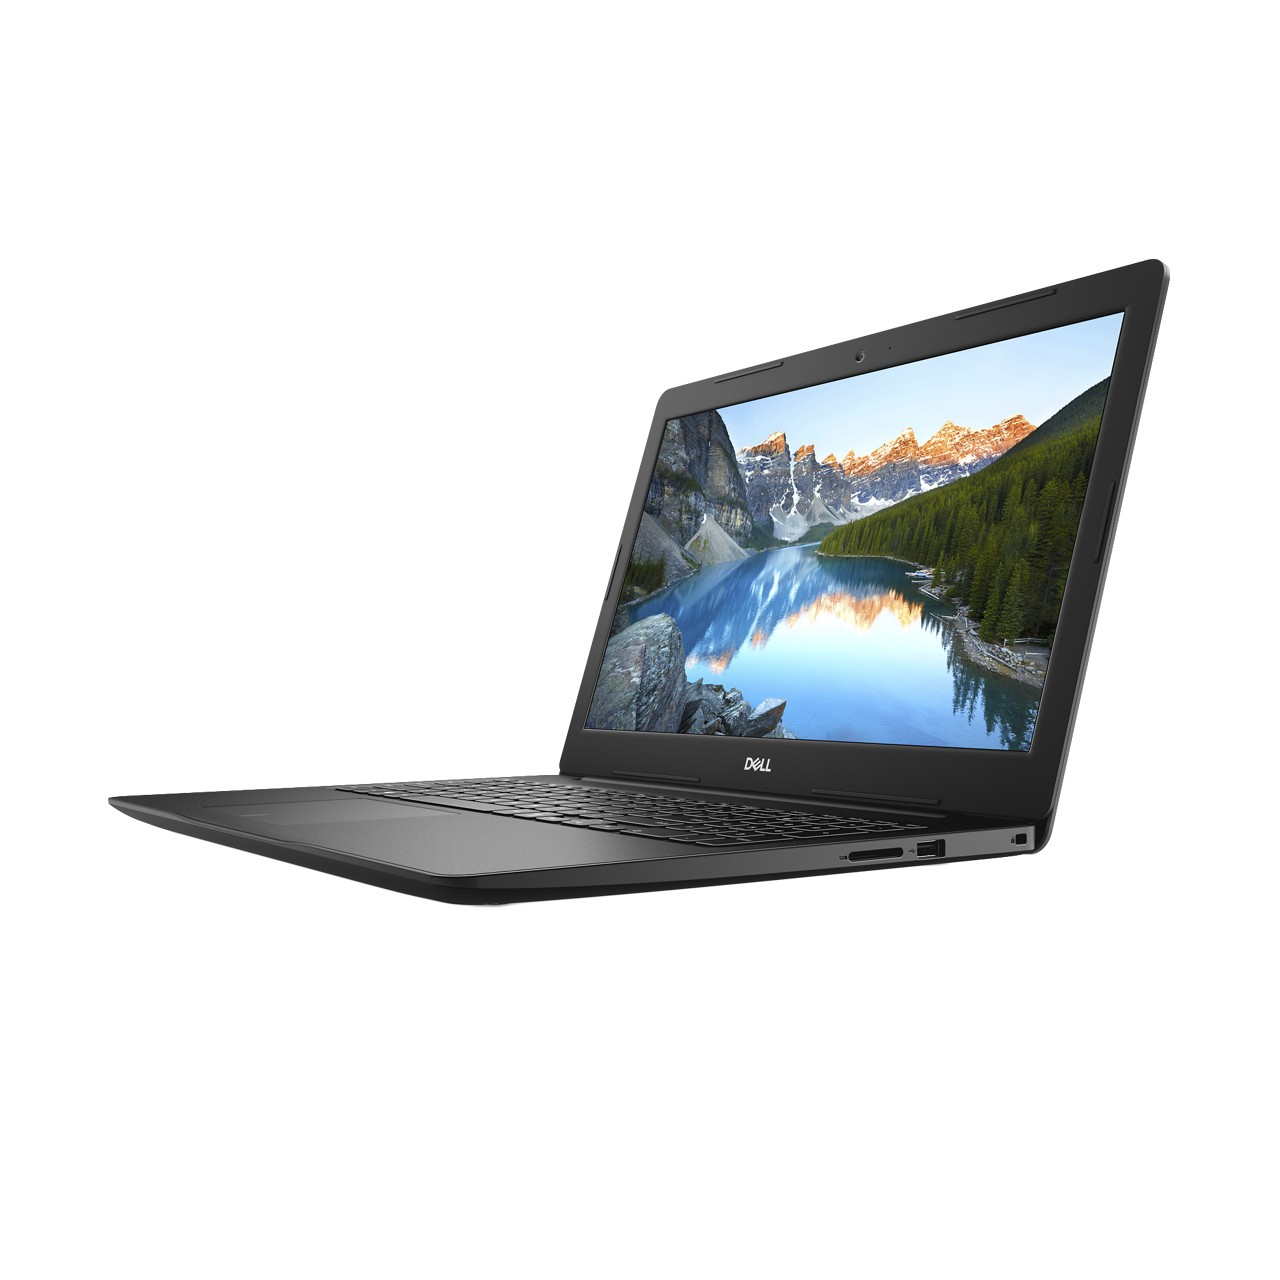 Notebook Dell Inspiron 3584 Core I3 8130u Memoria 4gb Hd 1tb Tela Led 15.6' Hd Sistema Linux